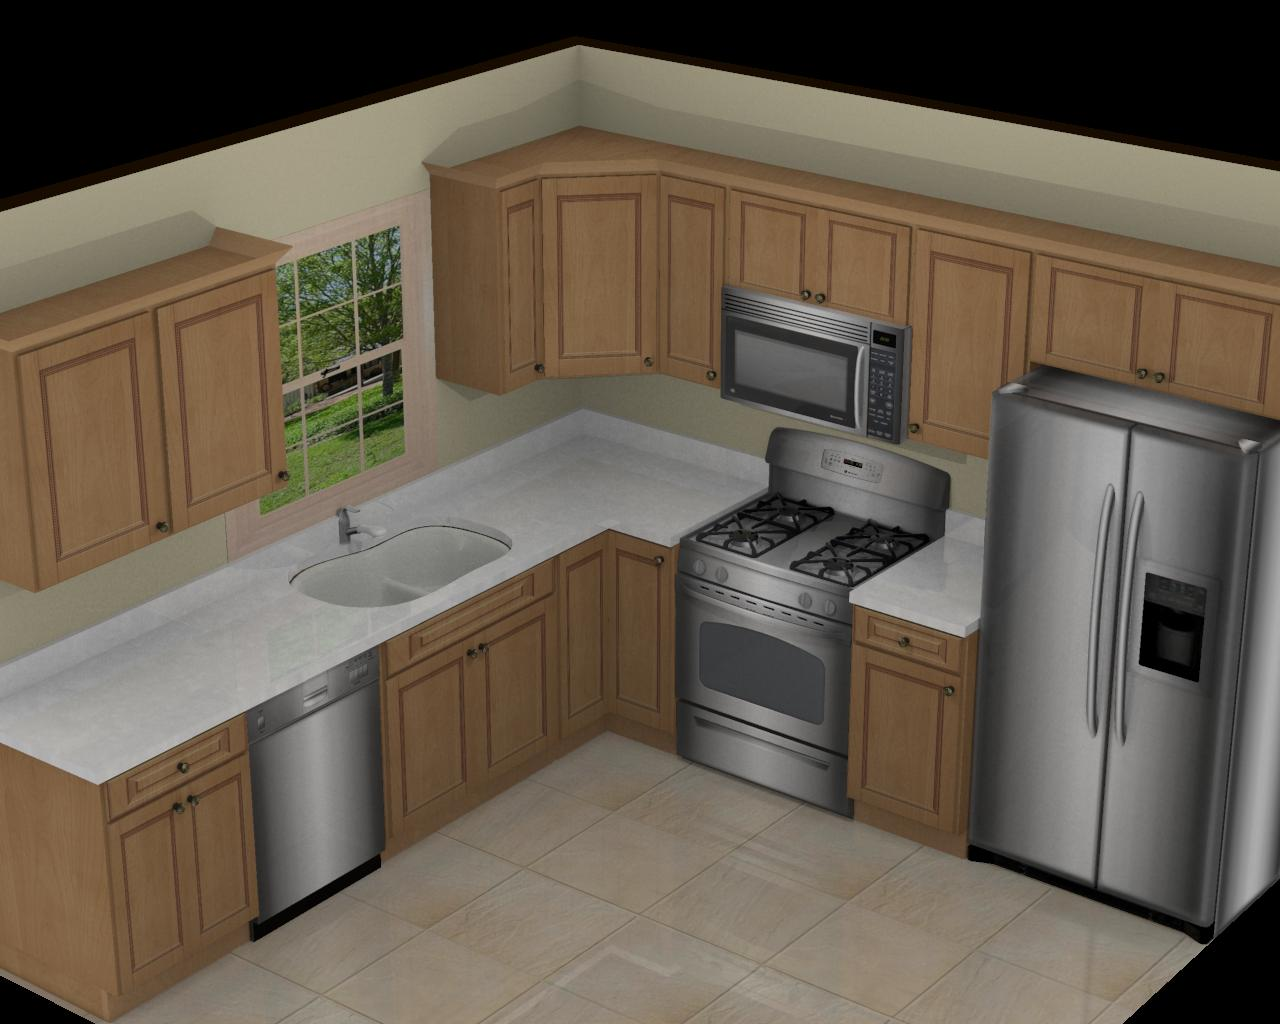 Kitchen Model Design